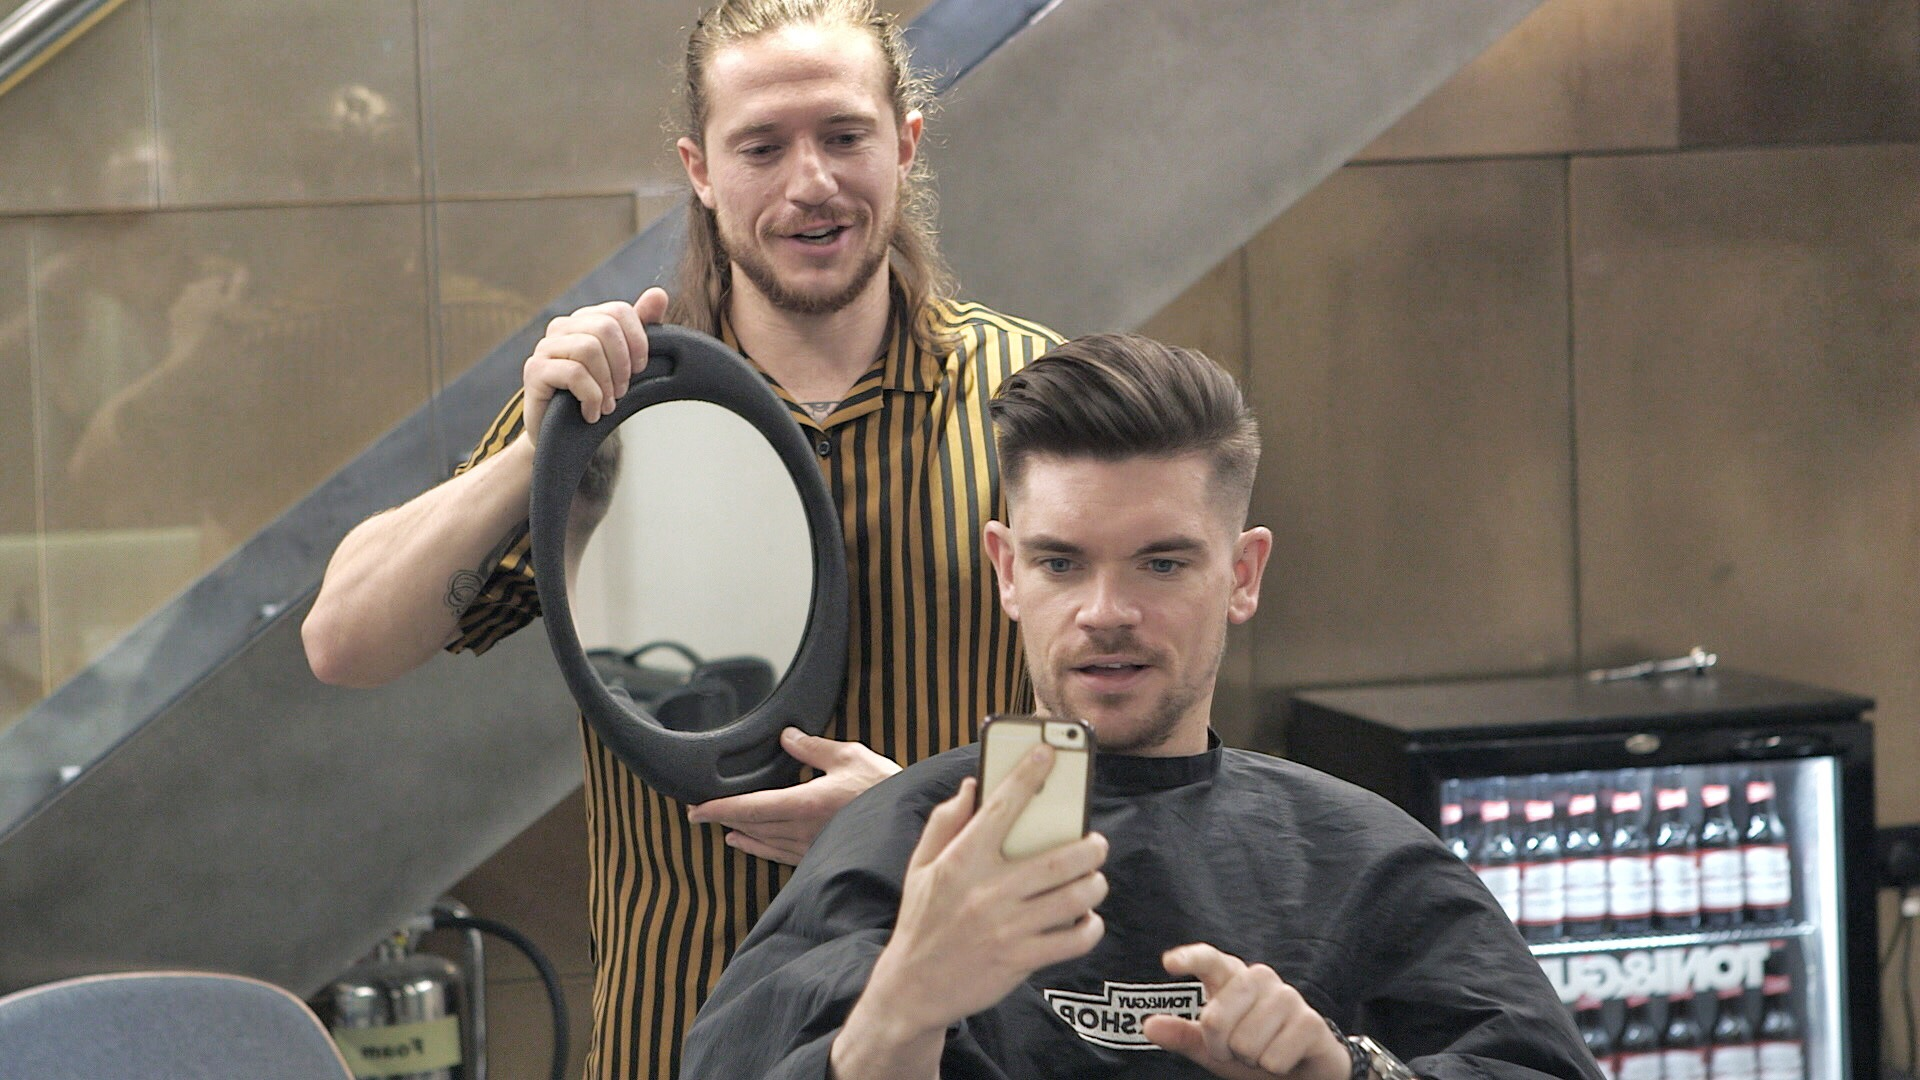 skin-fade-haircut-side-pomp-hairstyle-how-to-Charlie-Cullen